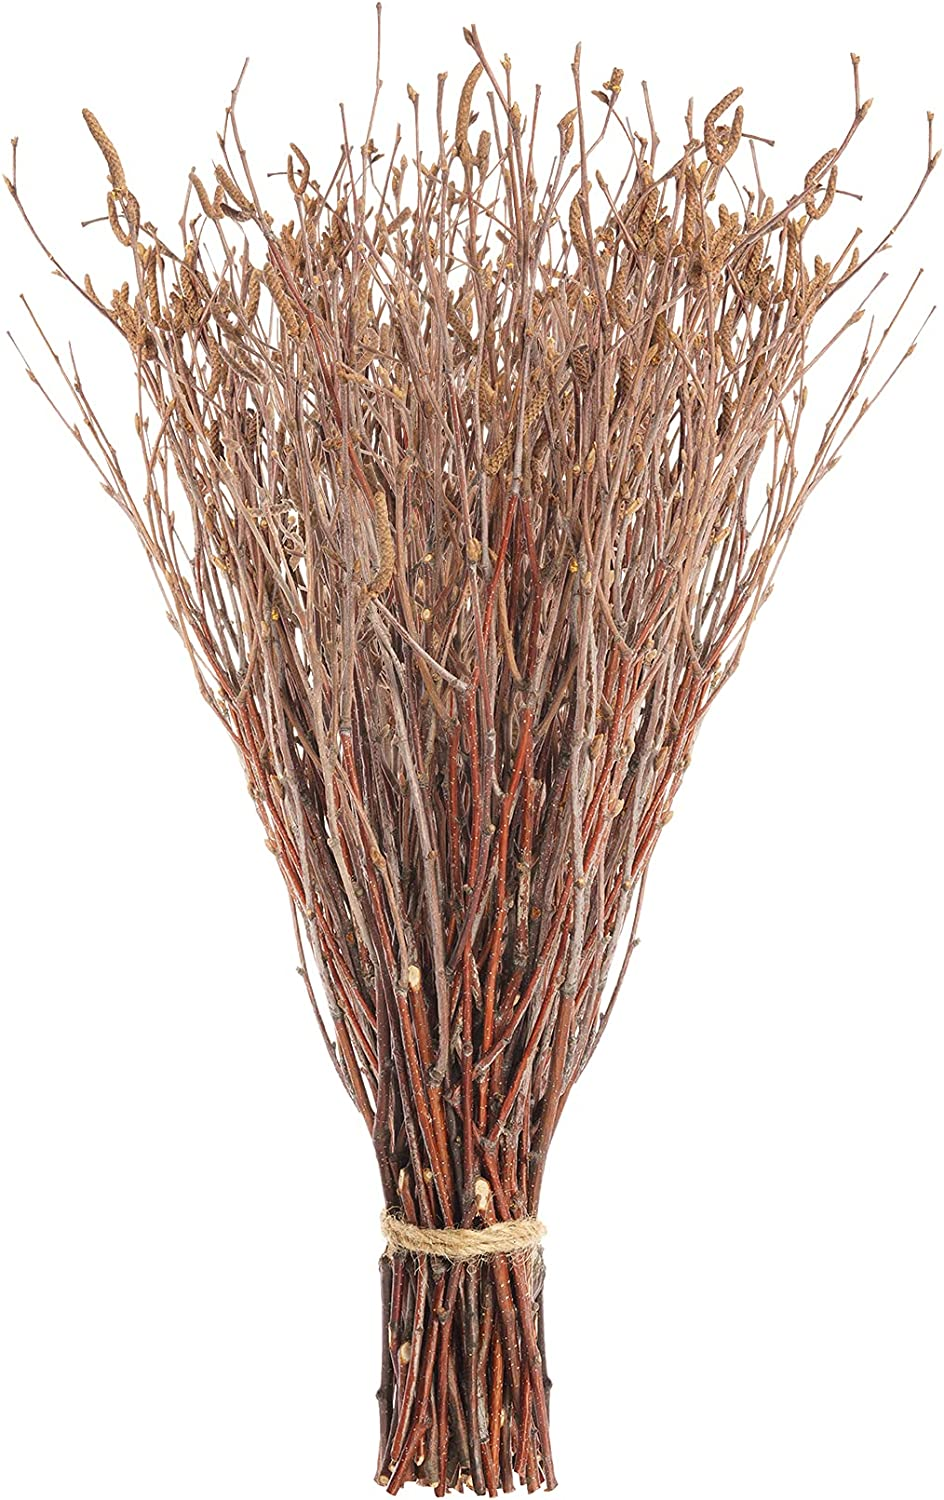 Birch Branches, 100% Natural Birch for Perfect Centerpieces, Birch Twigs for DIY Decor, Handmade Wreath or Home Decor, 50 PCs Attentively Packed